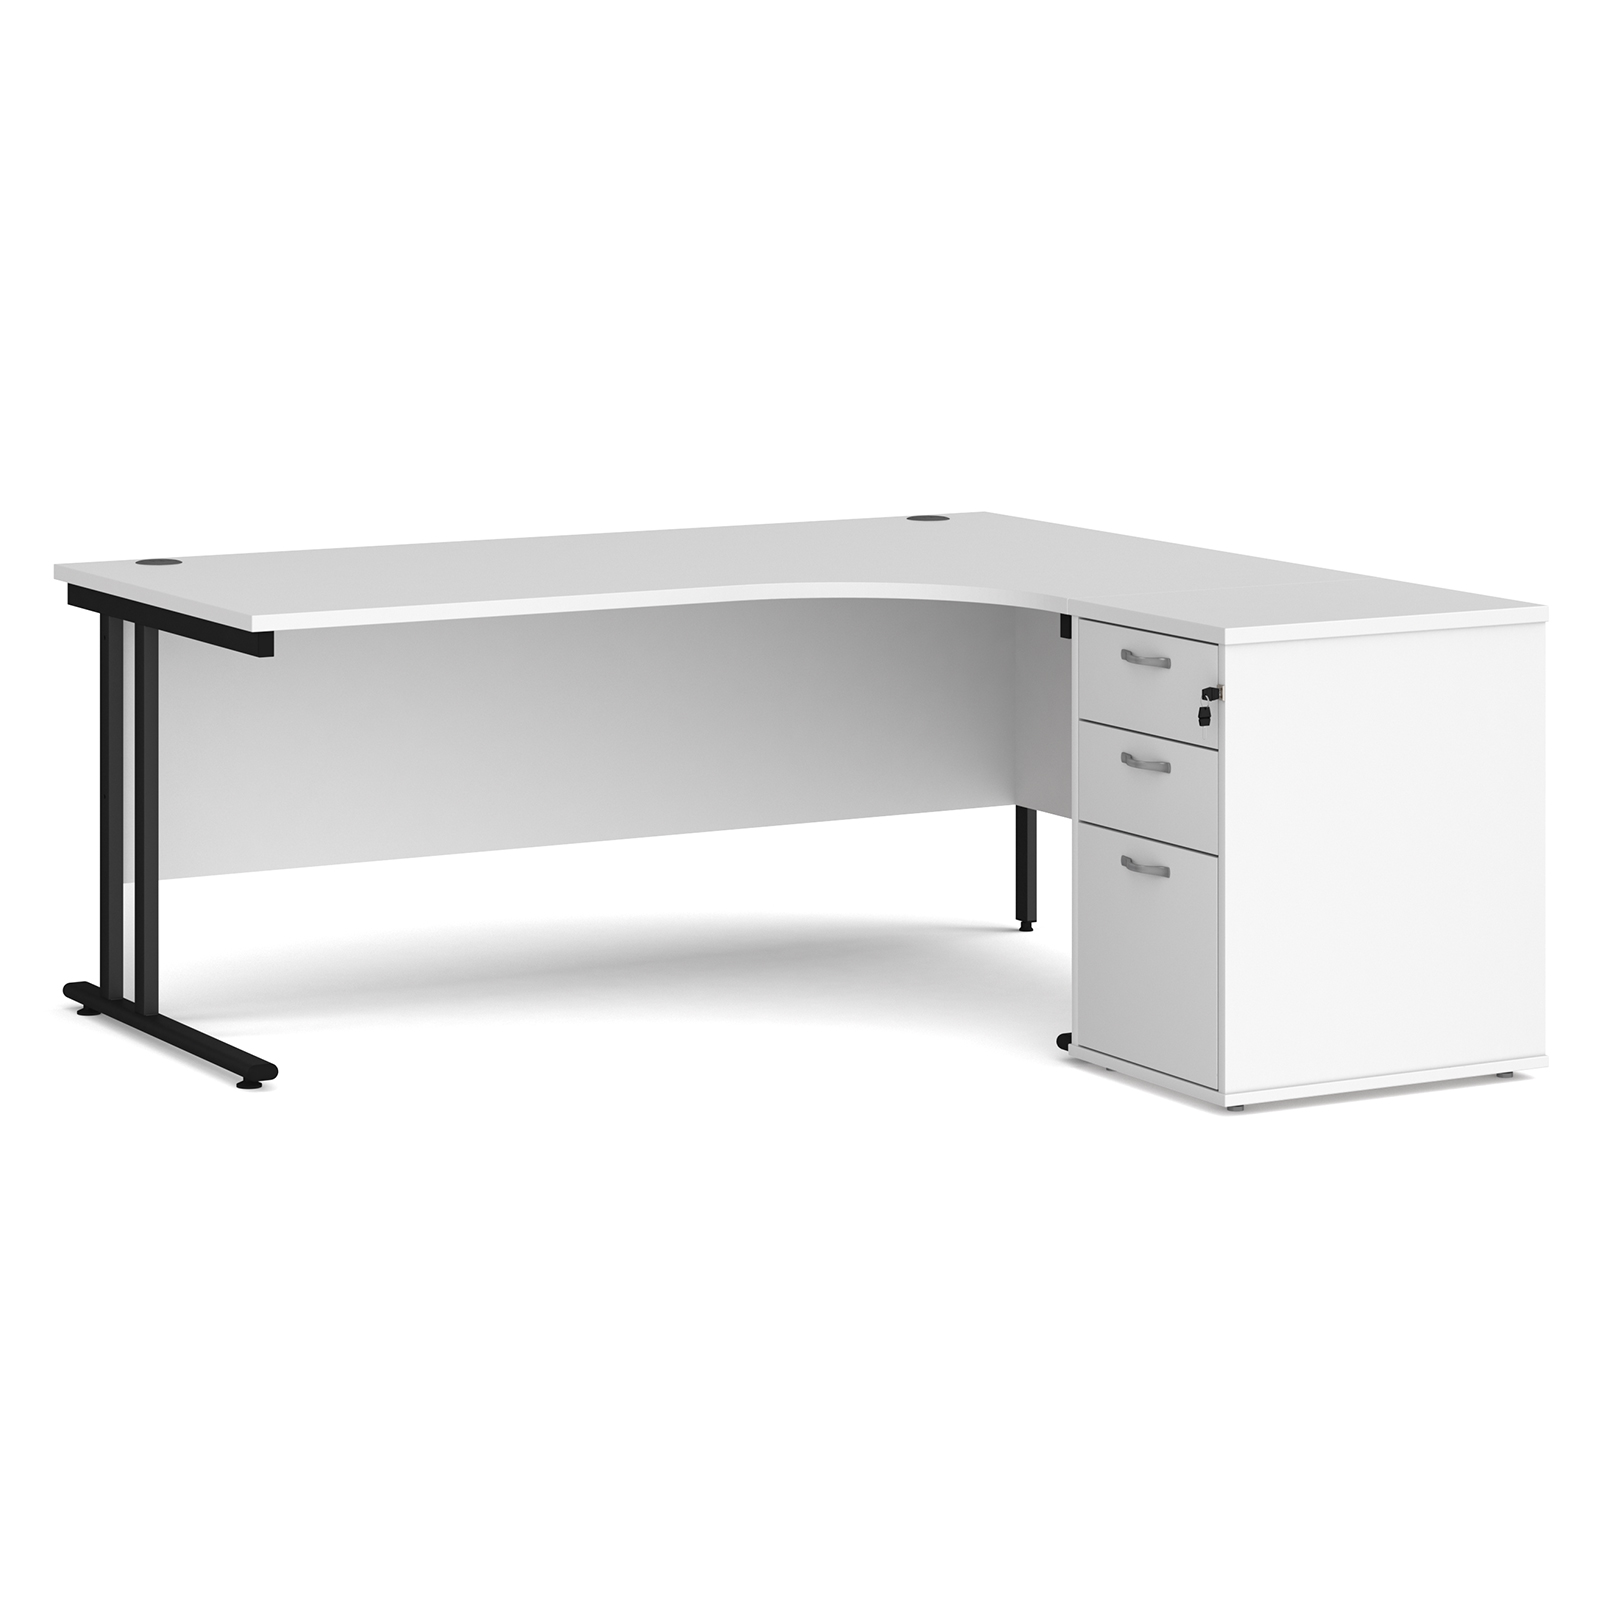 Right Handed Maestro 25 right hand ergonomic desk 1800mm with black cantilever frame and desk high pedestal - white